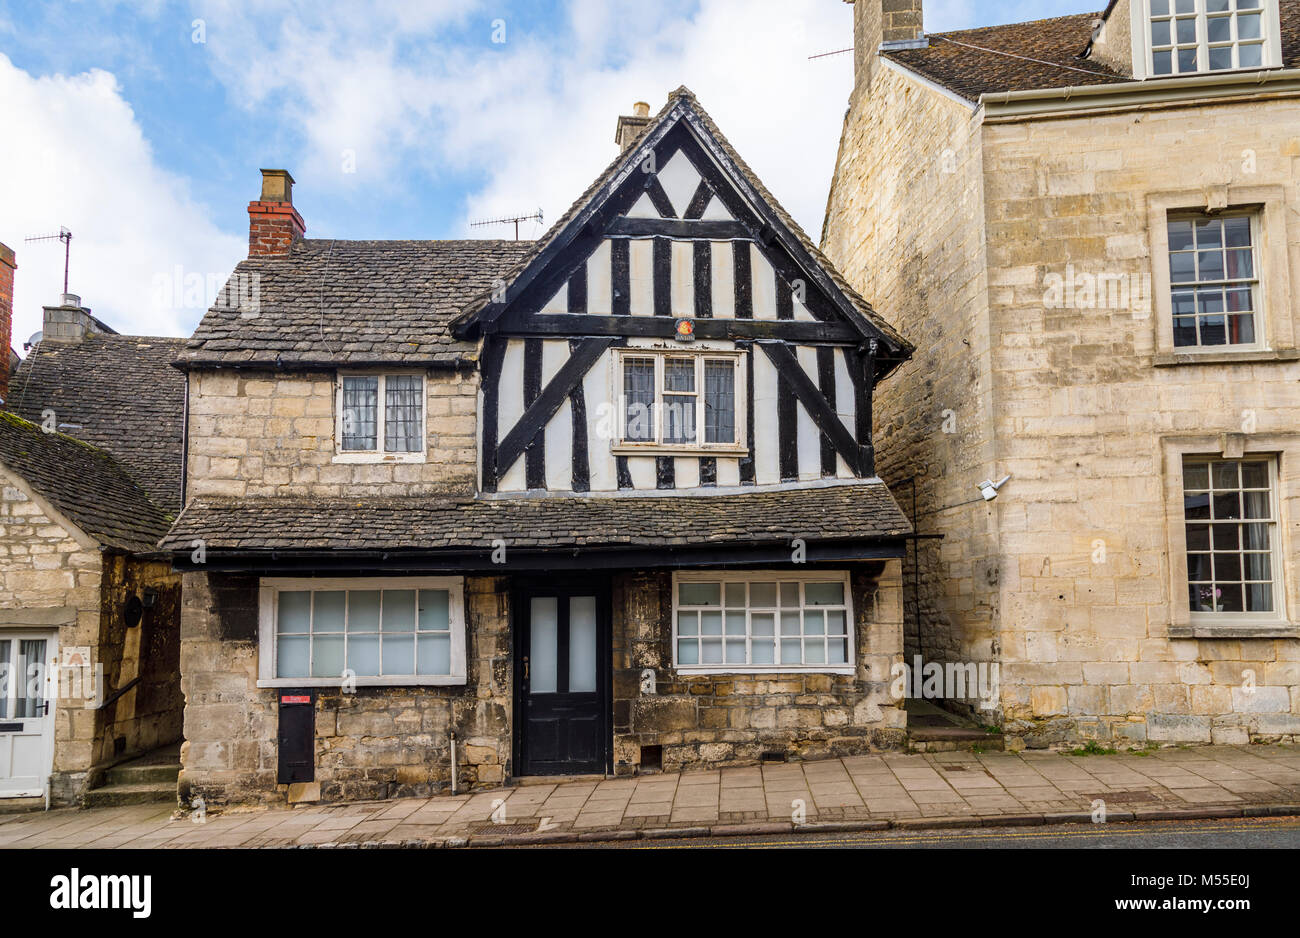 Sightseeing: Historic timbered house and Cotswold stone buildings in New Street, Painswick, an unspoilt village - Stock Image